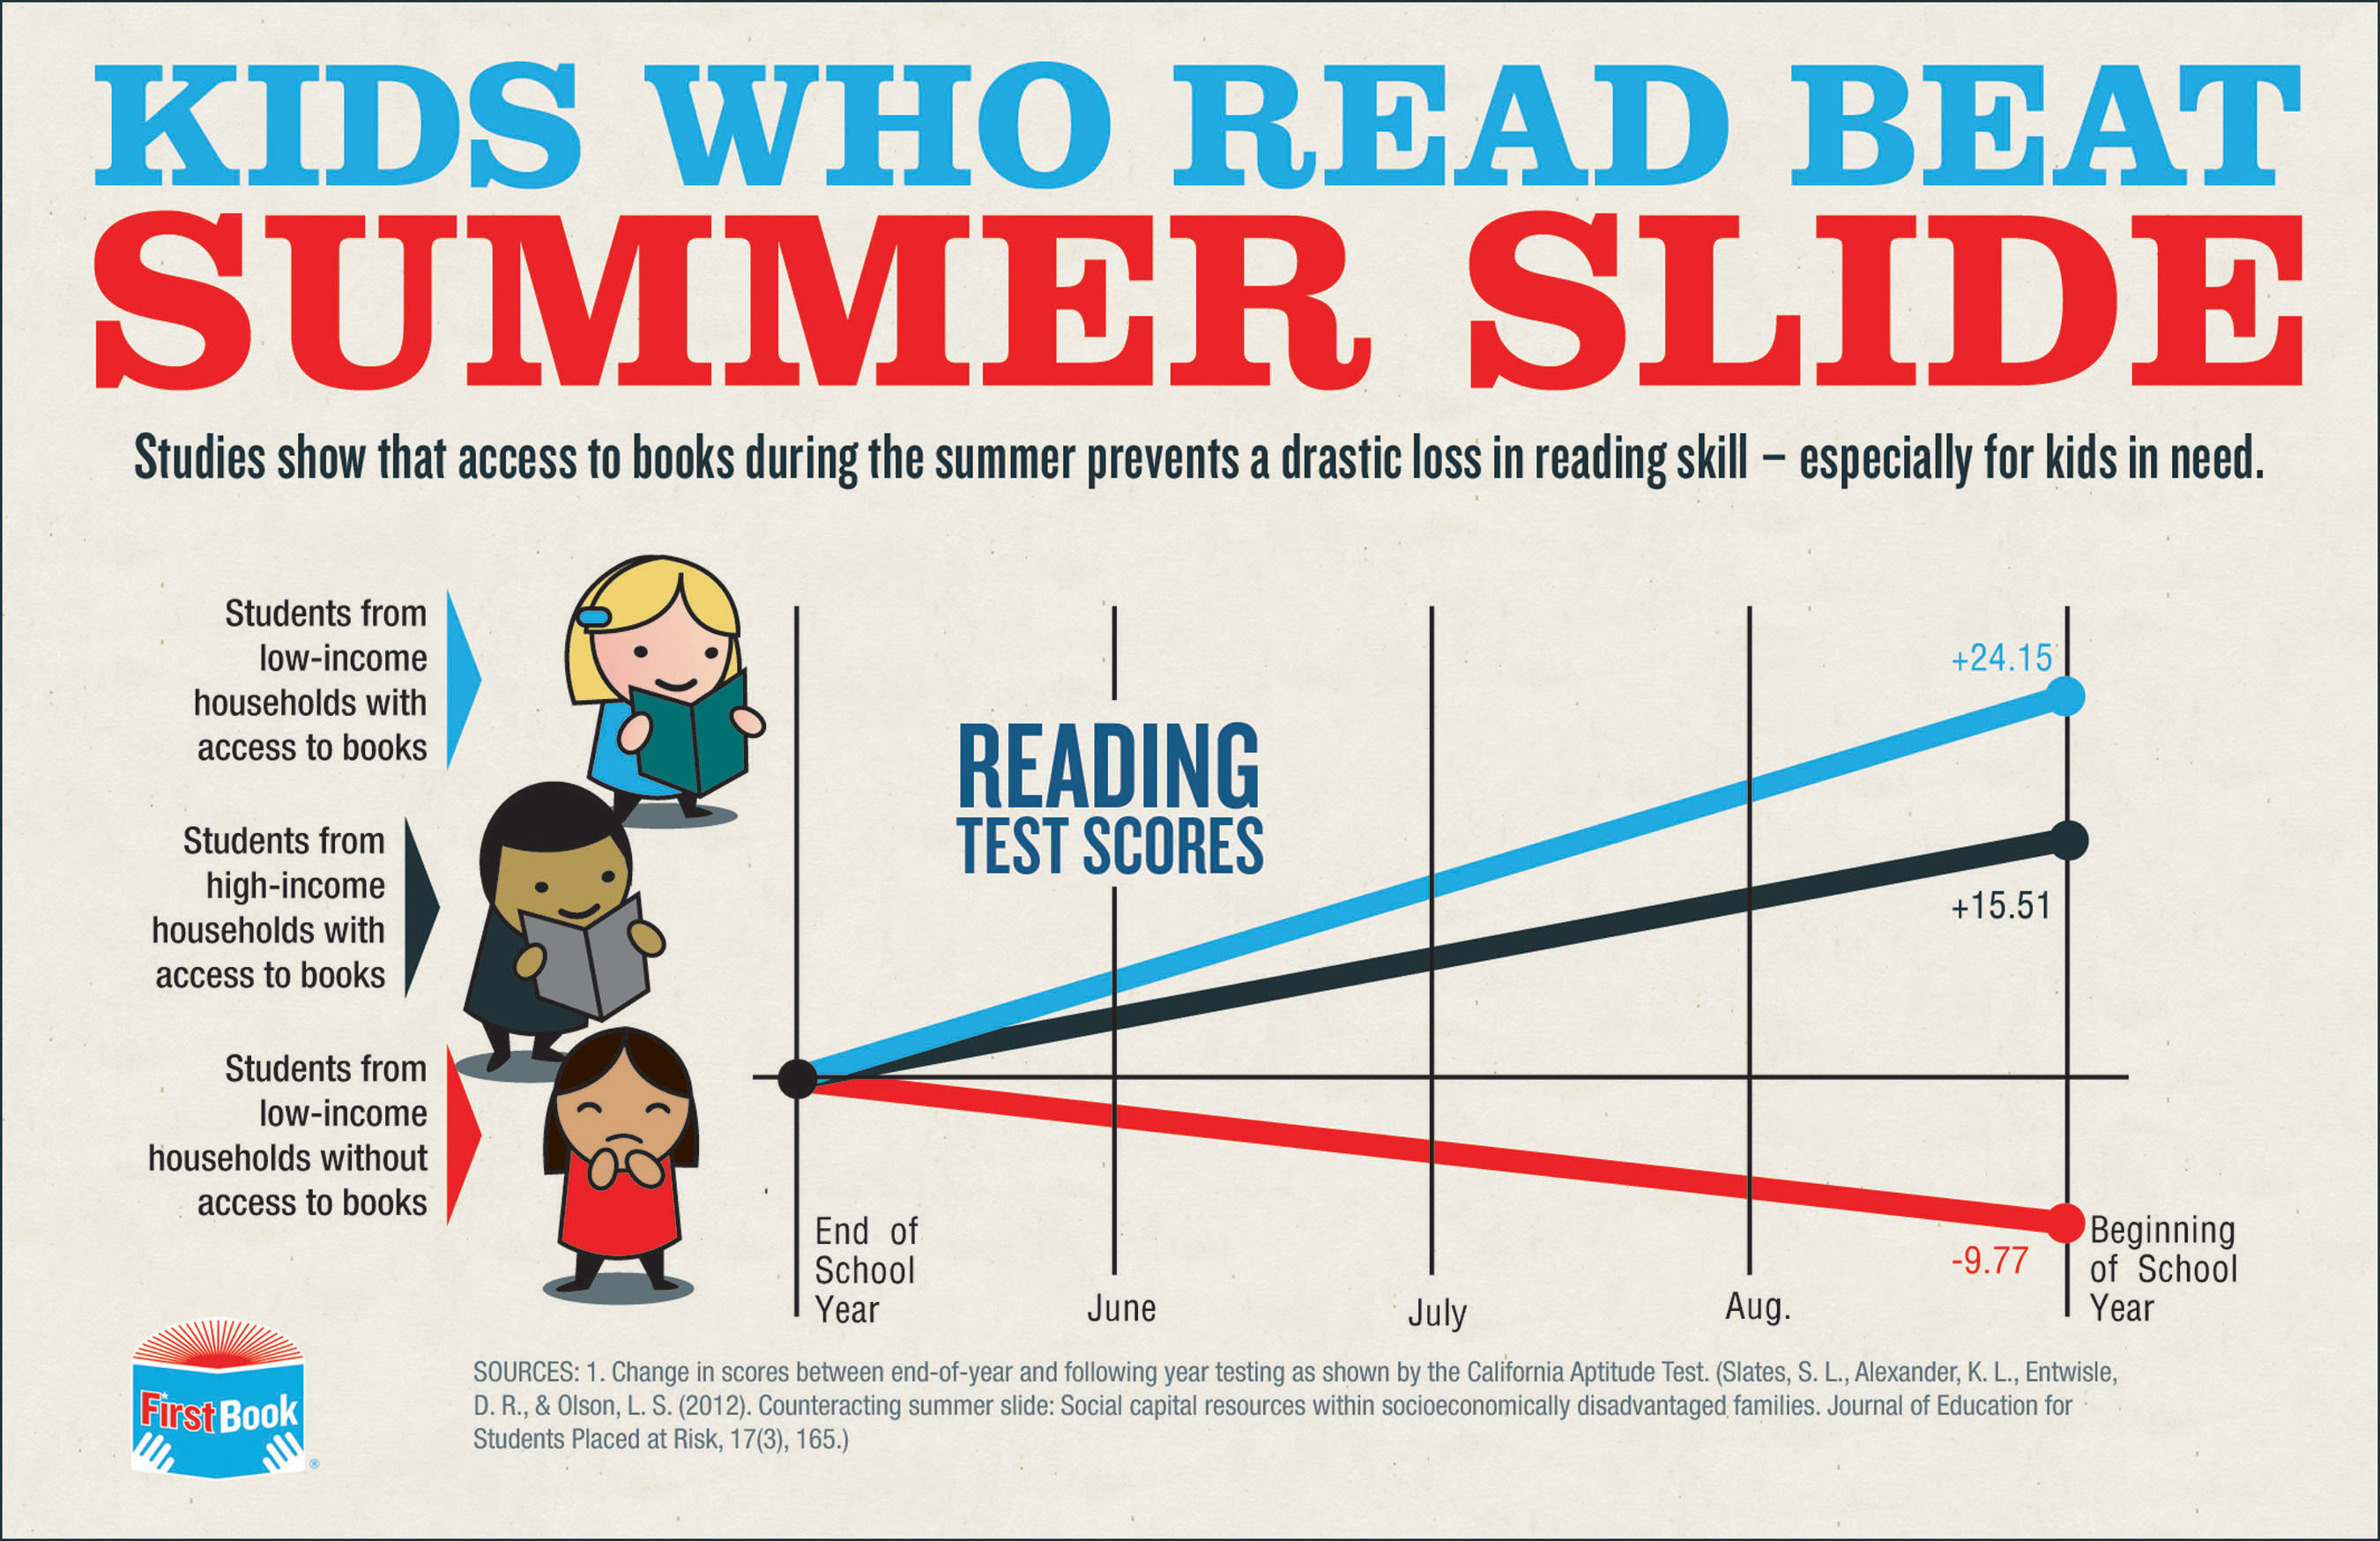 [INFOGRAPHIC] Kids Who Read Beat Summer Slide